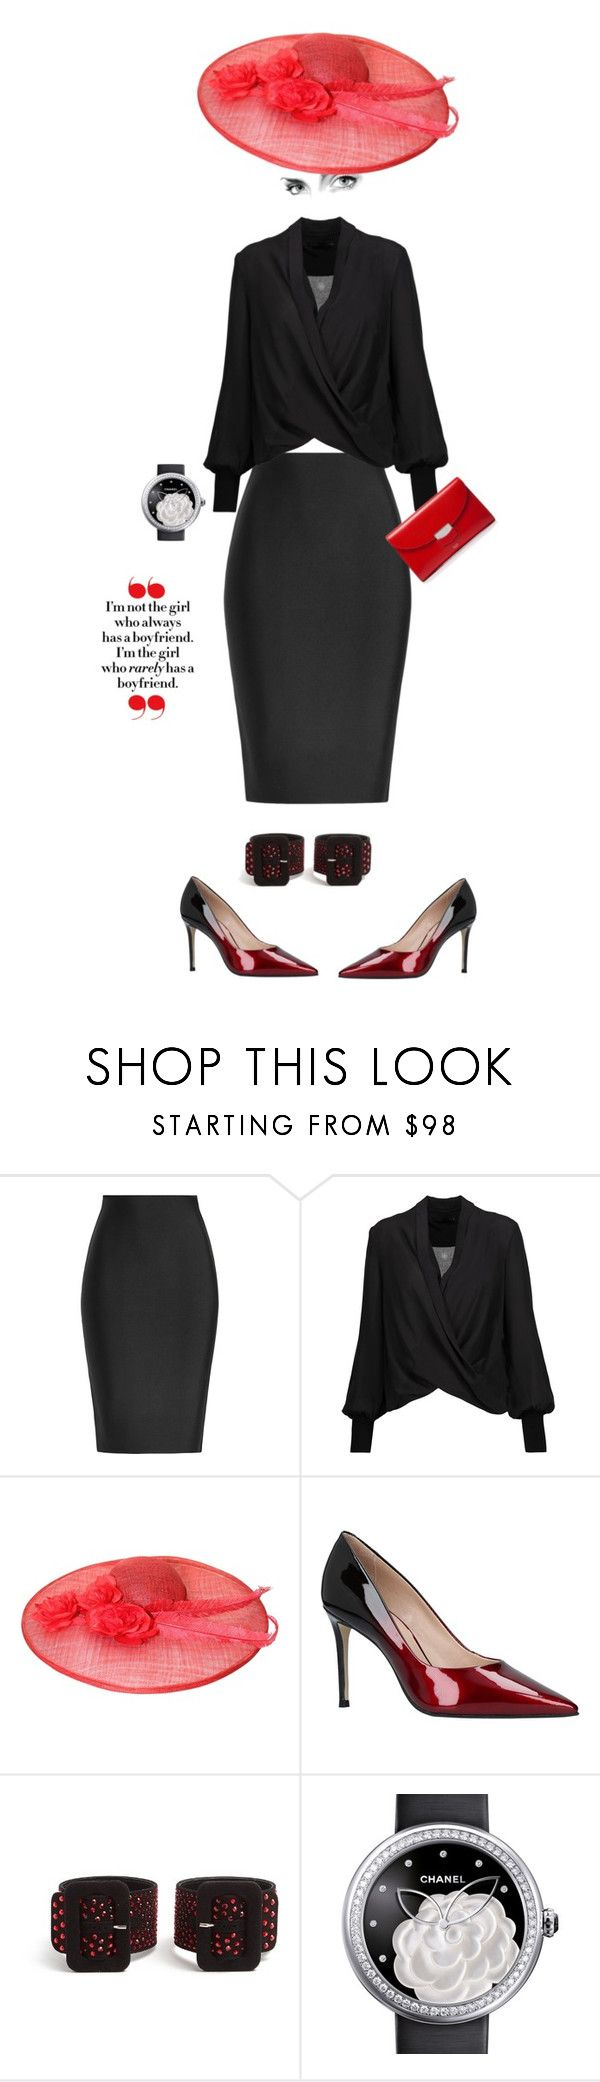 """""""Sexiness zzz my name"""" by sylviaasue ❤ liked on Polyvore featuring Roland Mouret, Alice + Olivia, Carvela, Attico, Chanel and CÉLINE"""